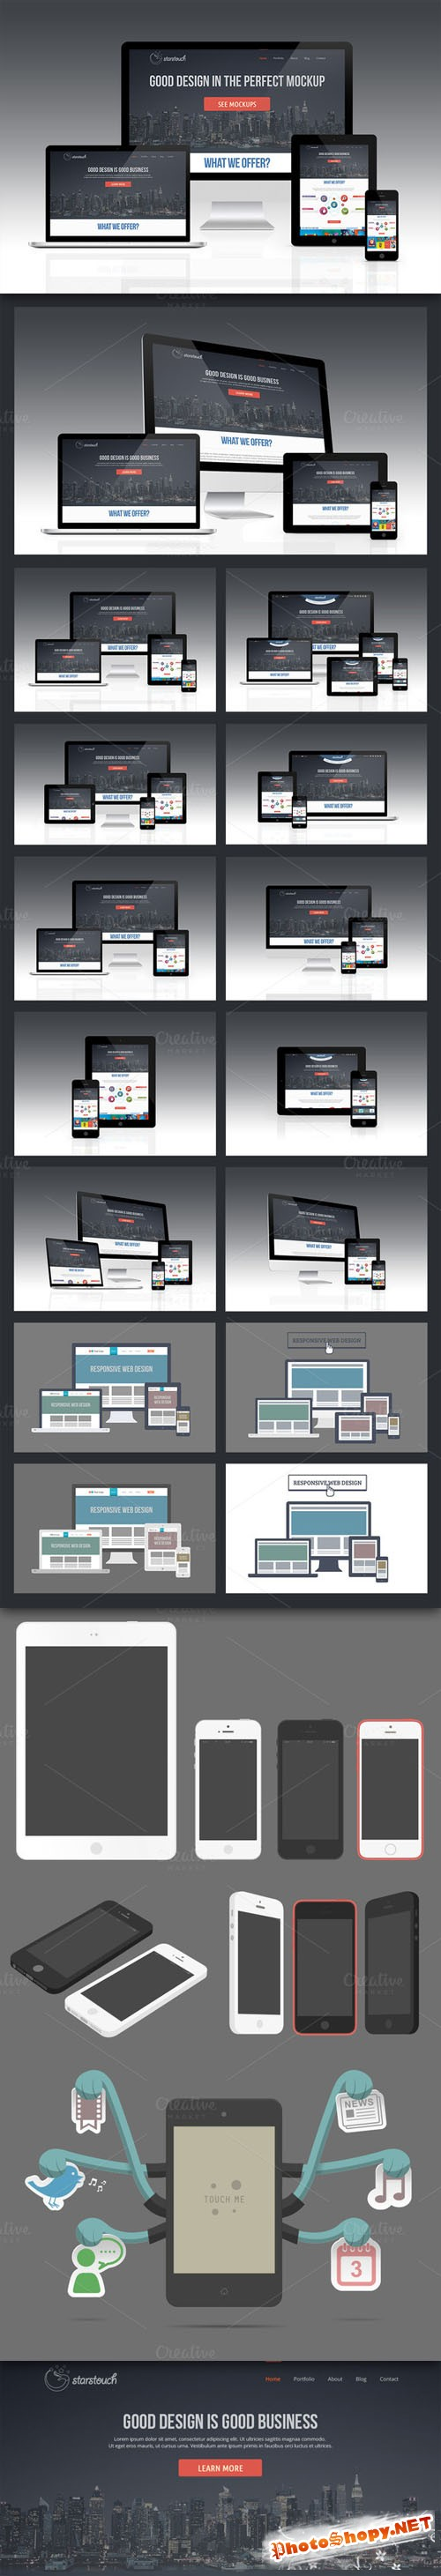 CreativeMarket - Responsive Screen Mockup